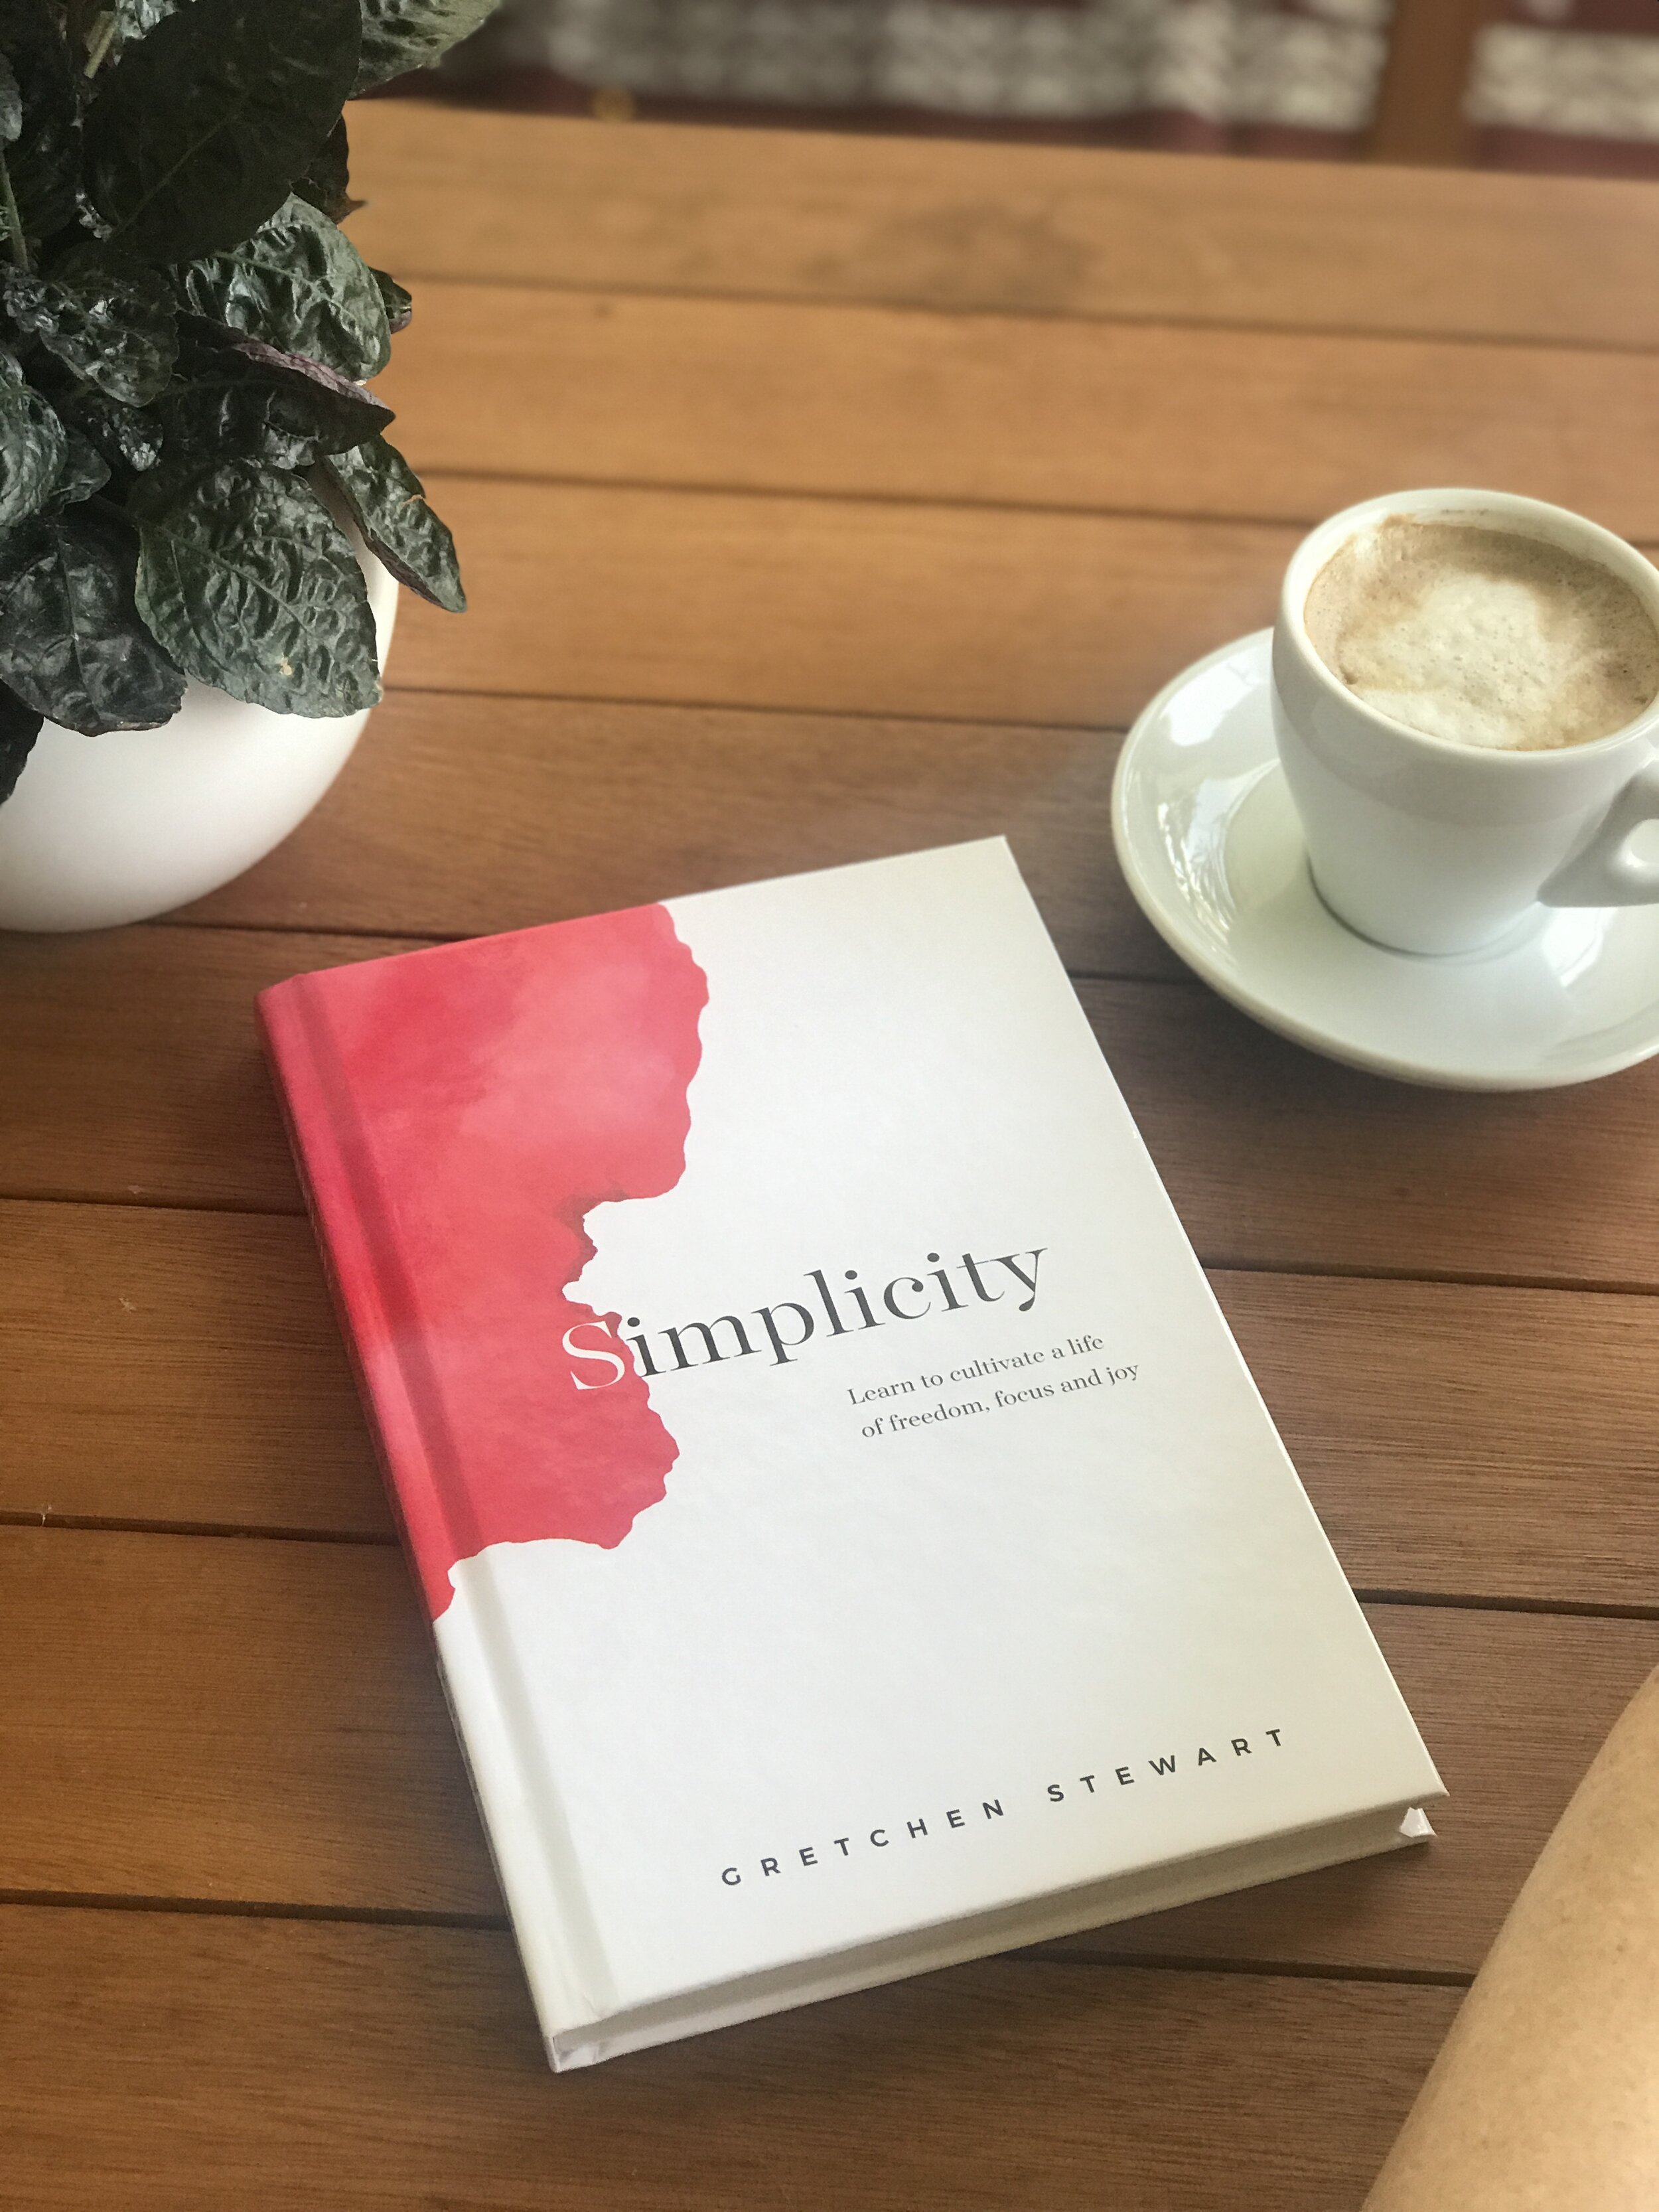 Read my bestselling book Simplicity - Simplicity: Learn to cultivate a life of freedom, focus and joy